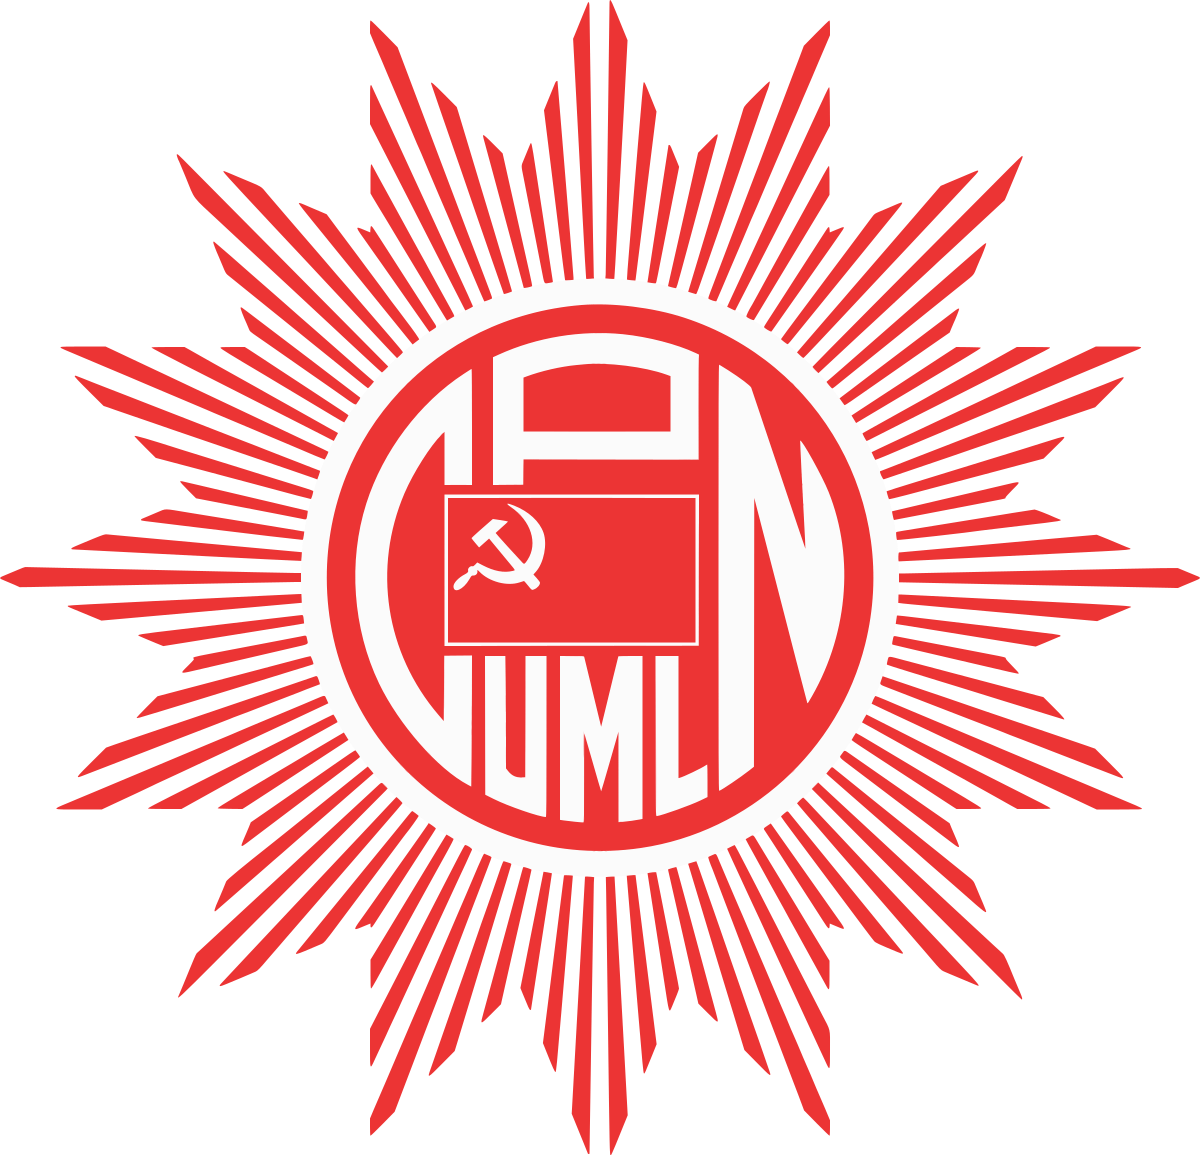 Communist Party Of Nepal - Nepal Communist Party Amale (#1421808) - HD  Wallpaper & Backgrounds Download